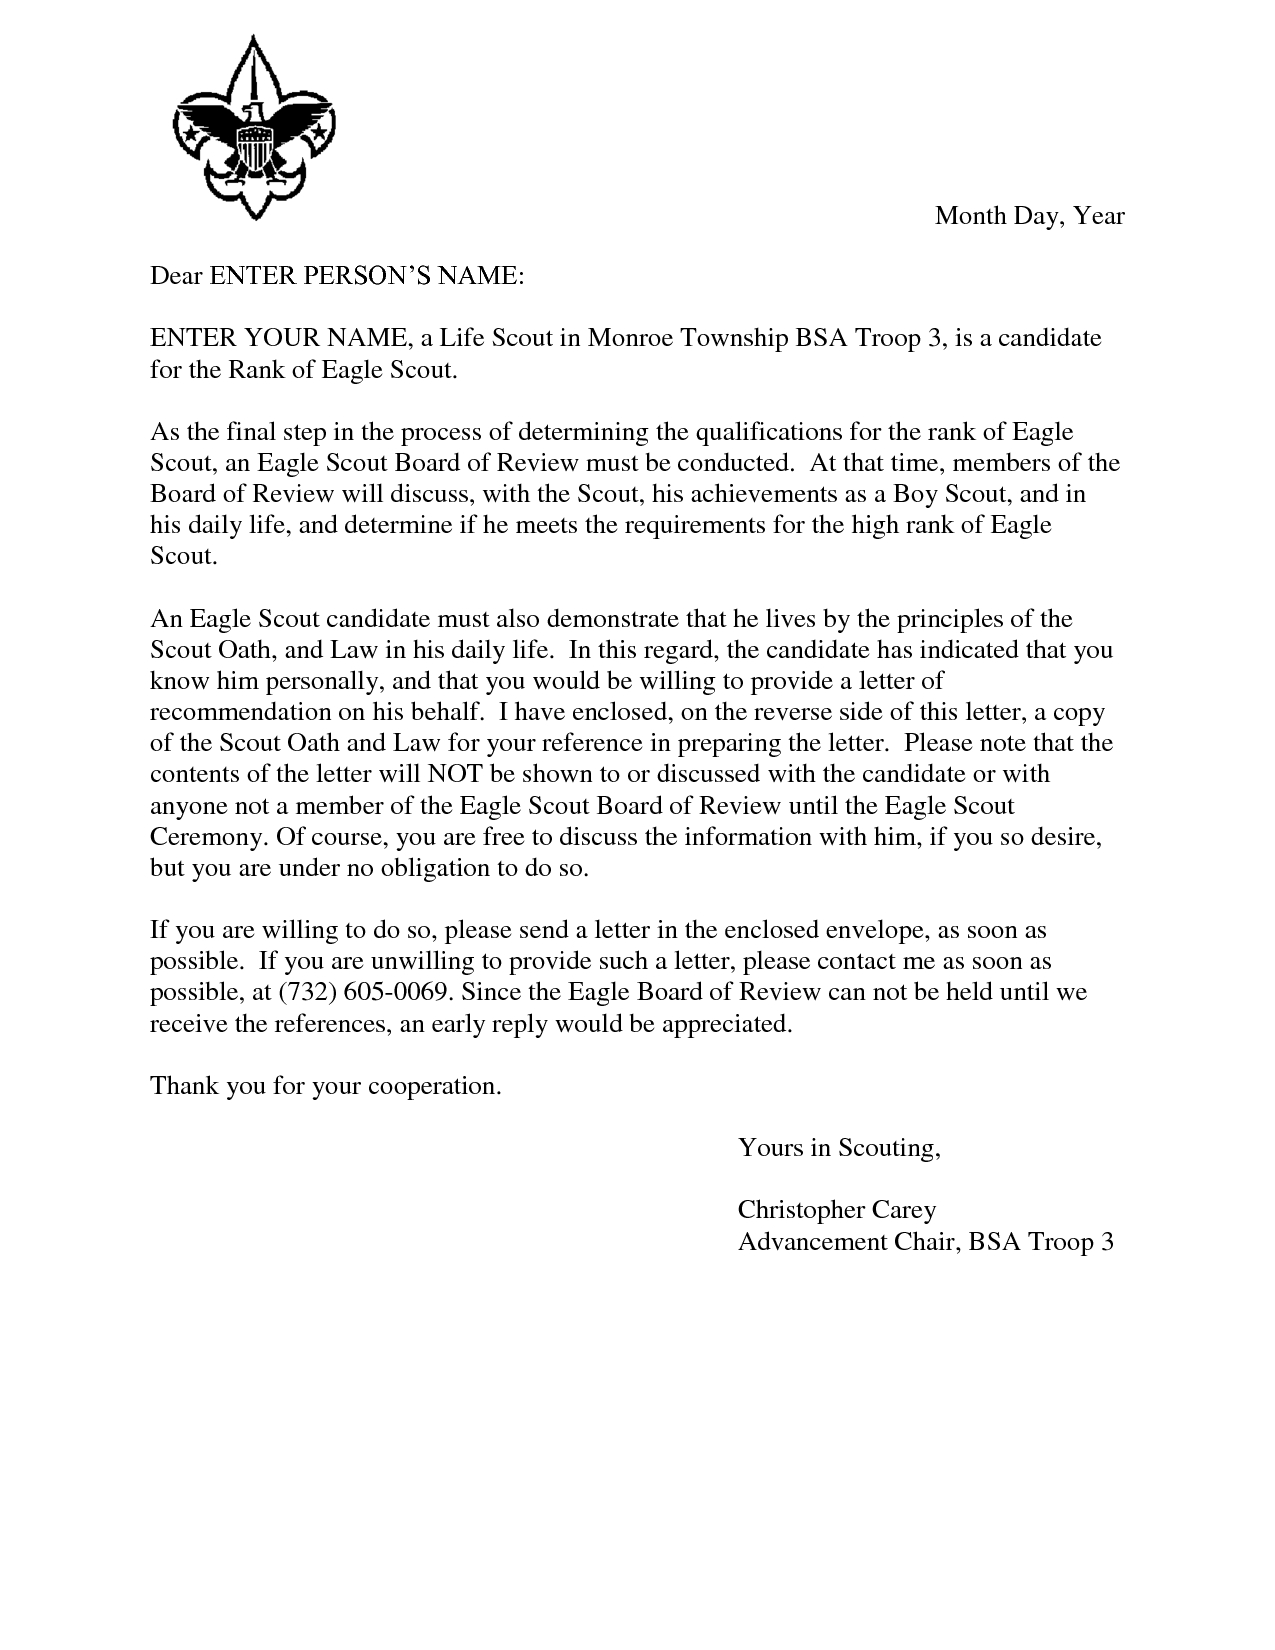 Letter Of Recommendation Template - Eagle Scout Reference Request Sample Letter Doc 7 by Hfr990q